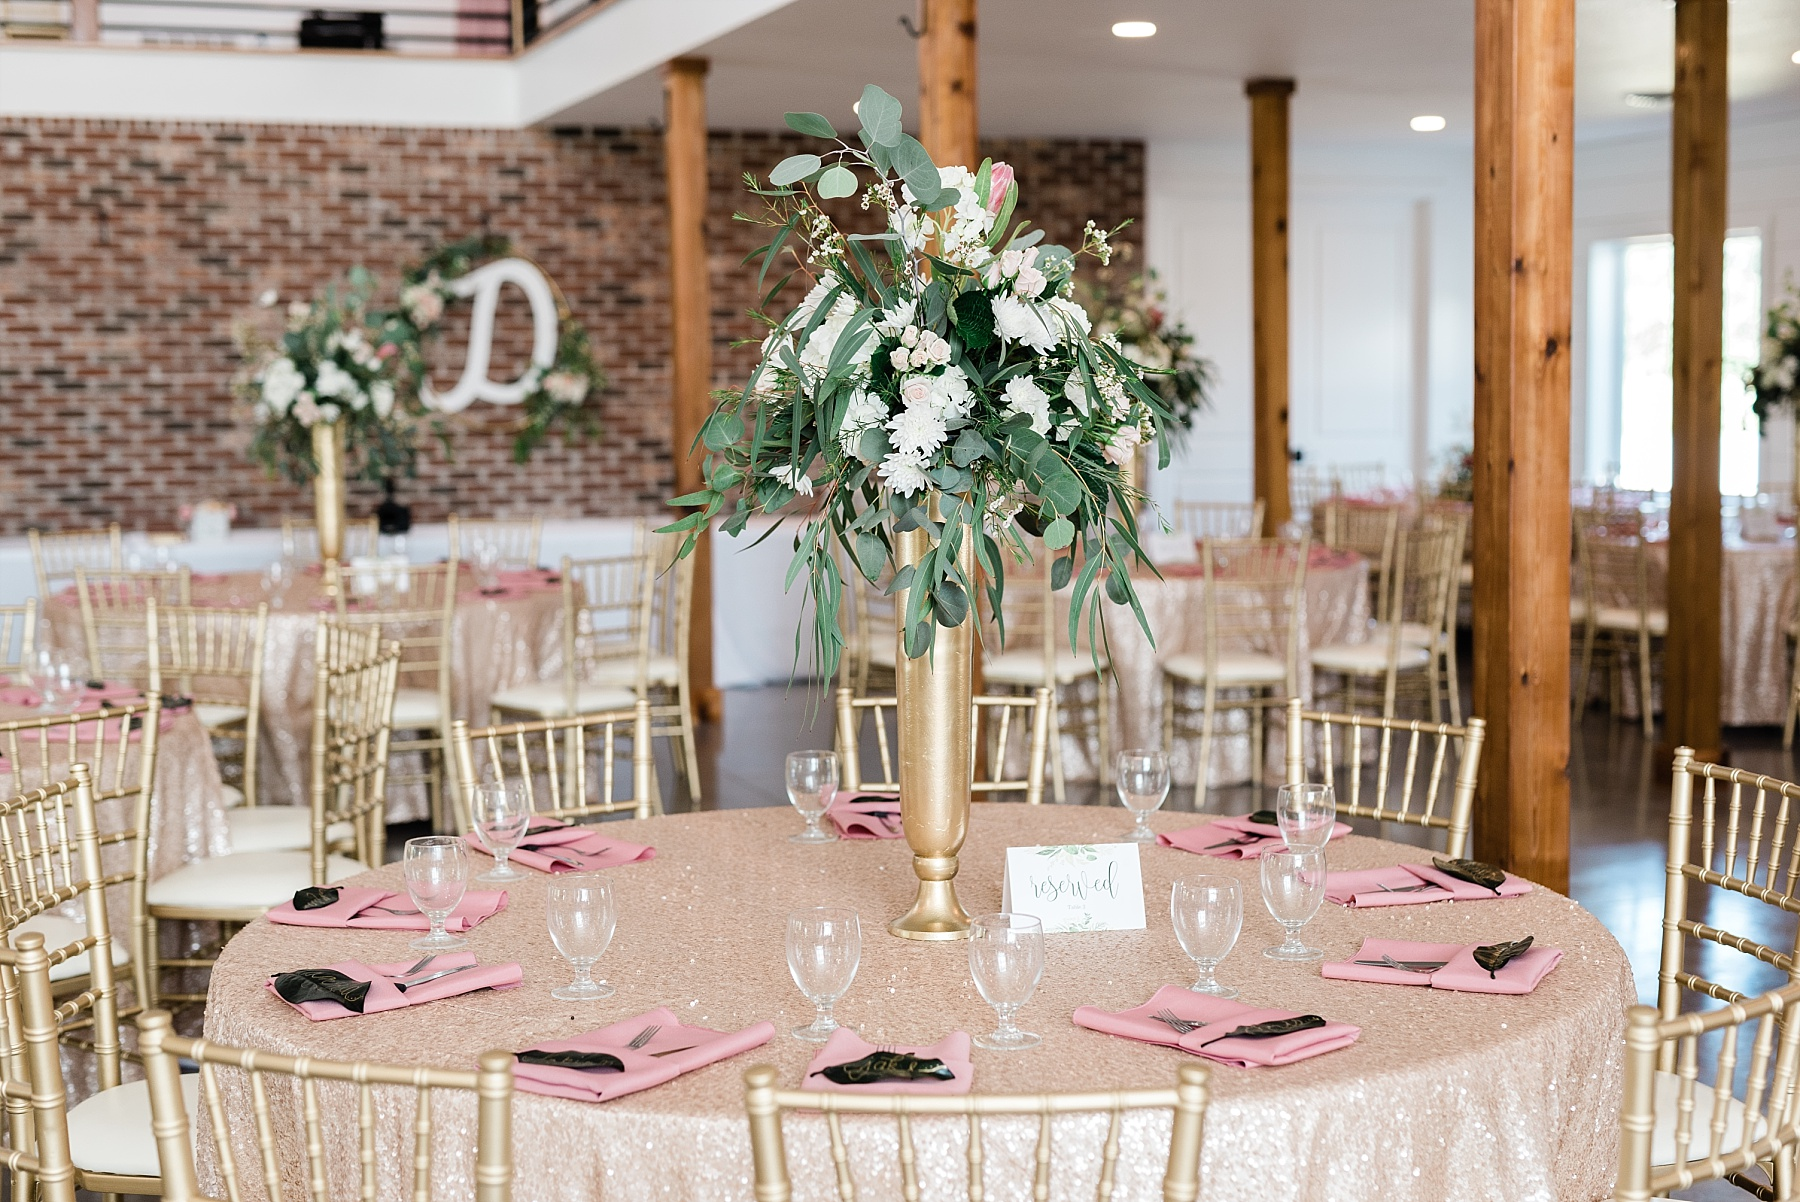 Stunning Heartfelt, Elegant, Fine Art, Chic, Outdoor Spring Wedding with Blush, Cream, Greenery, Rose Gold, and Sequins at Emerson Fields Venue by Kelsi Kliethermes Photography_0039.jpg